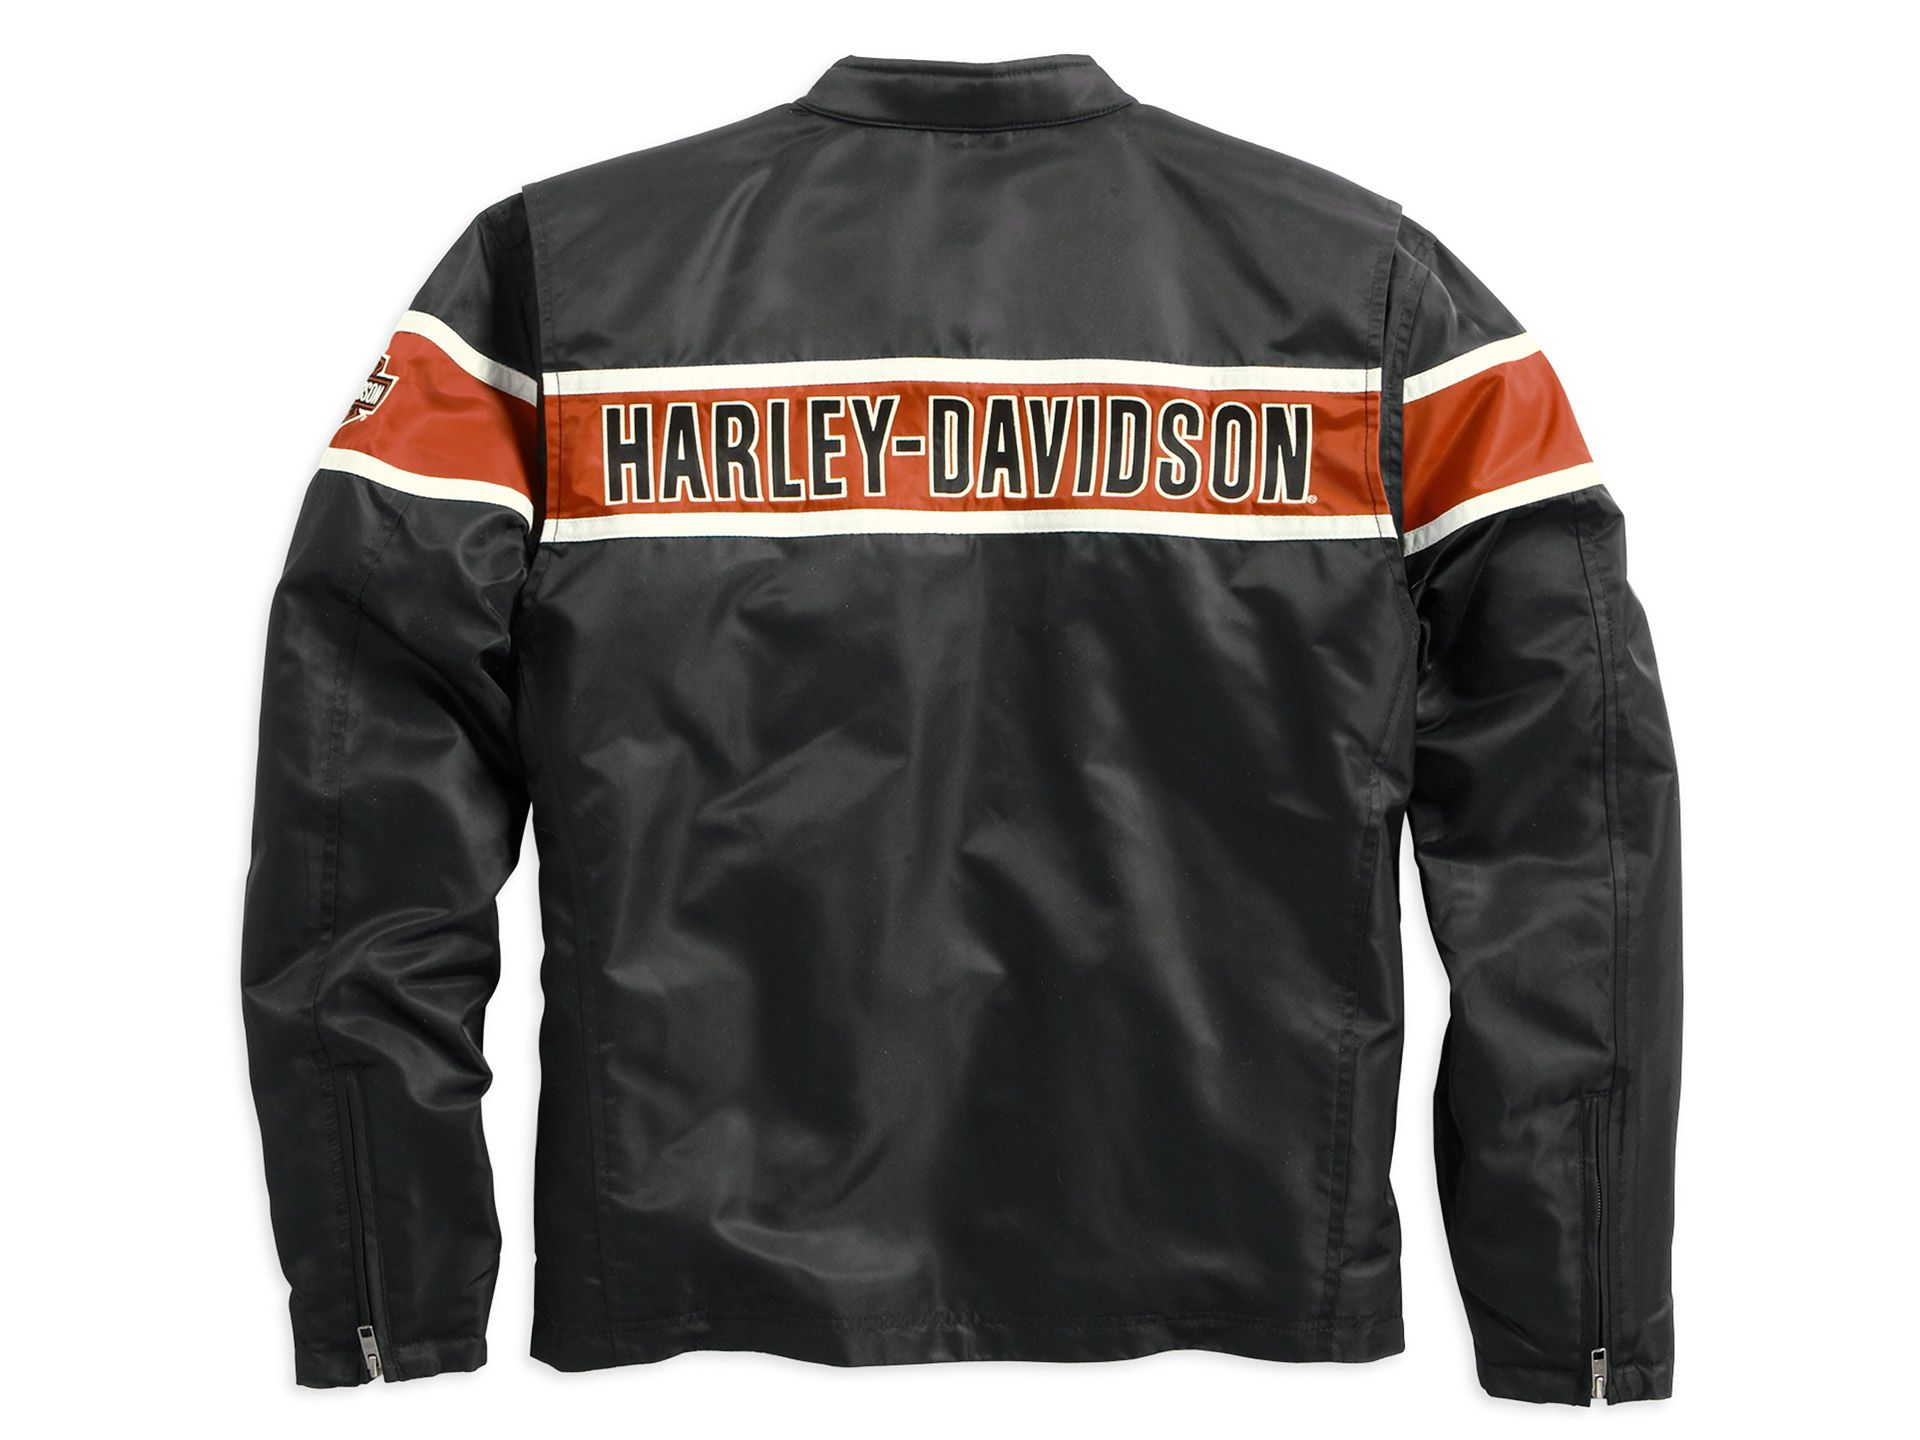 98537 14vm harley davidson generations jacke im. Black Bedroom Furniture Sets. Home Design Ideas